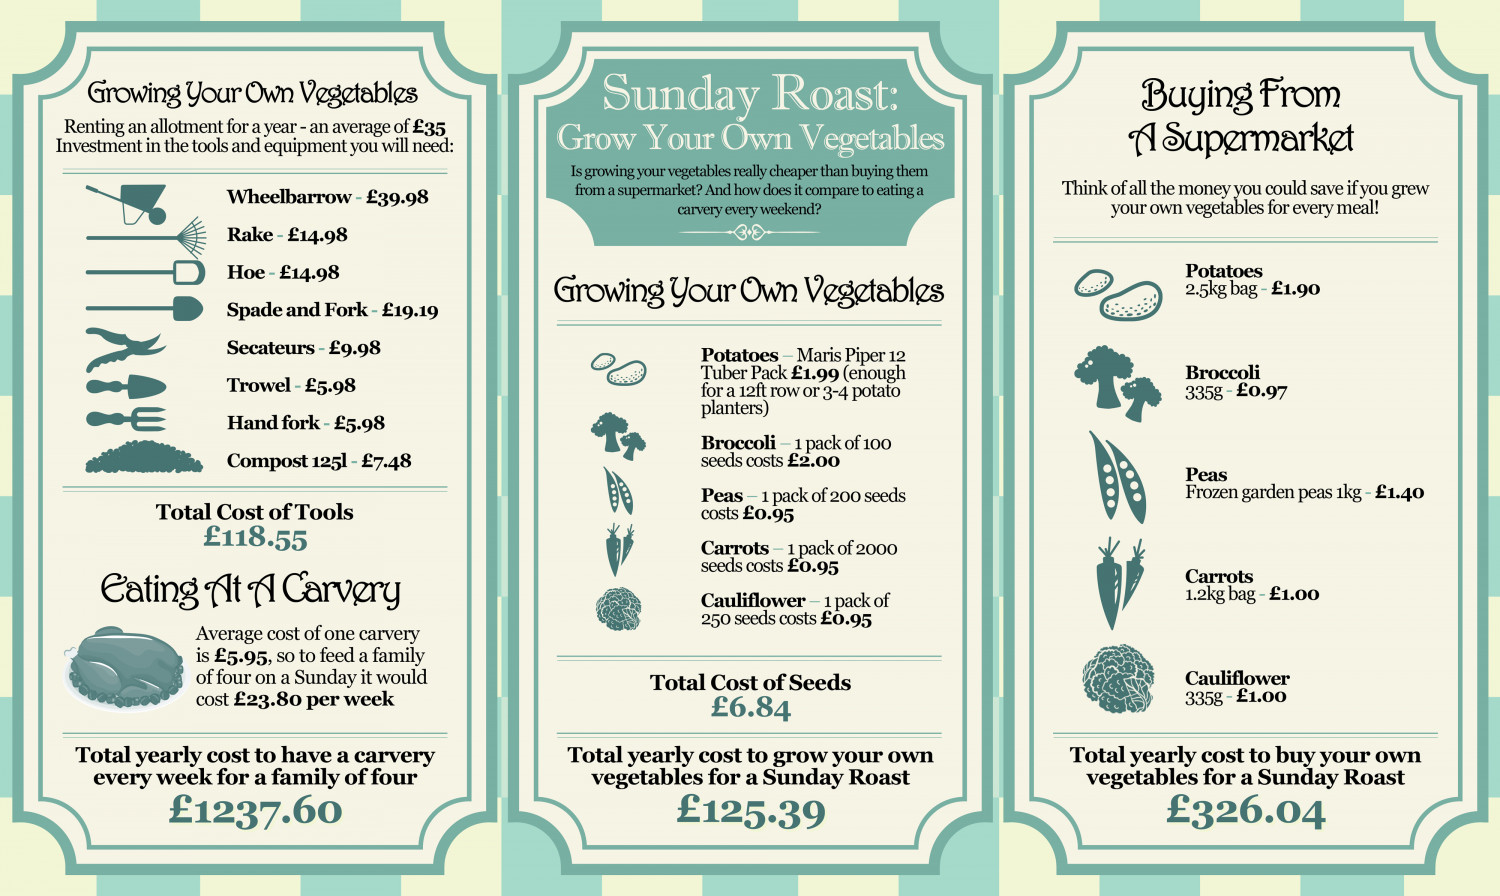 Sunday Roast: Grow Your Own Vegetables Infographic